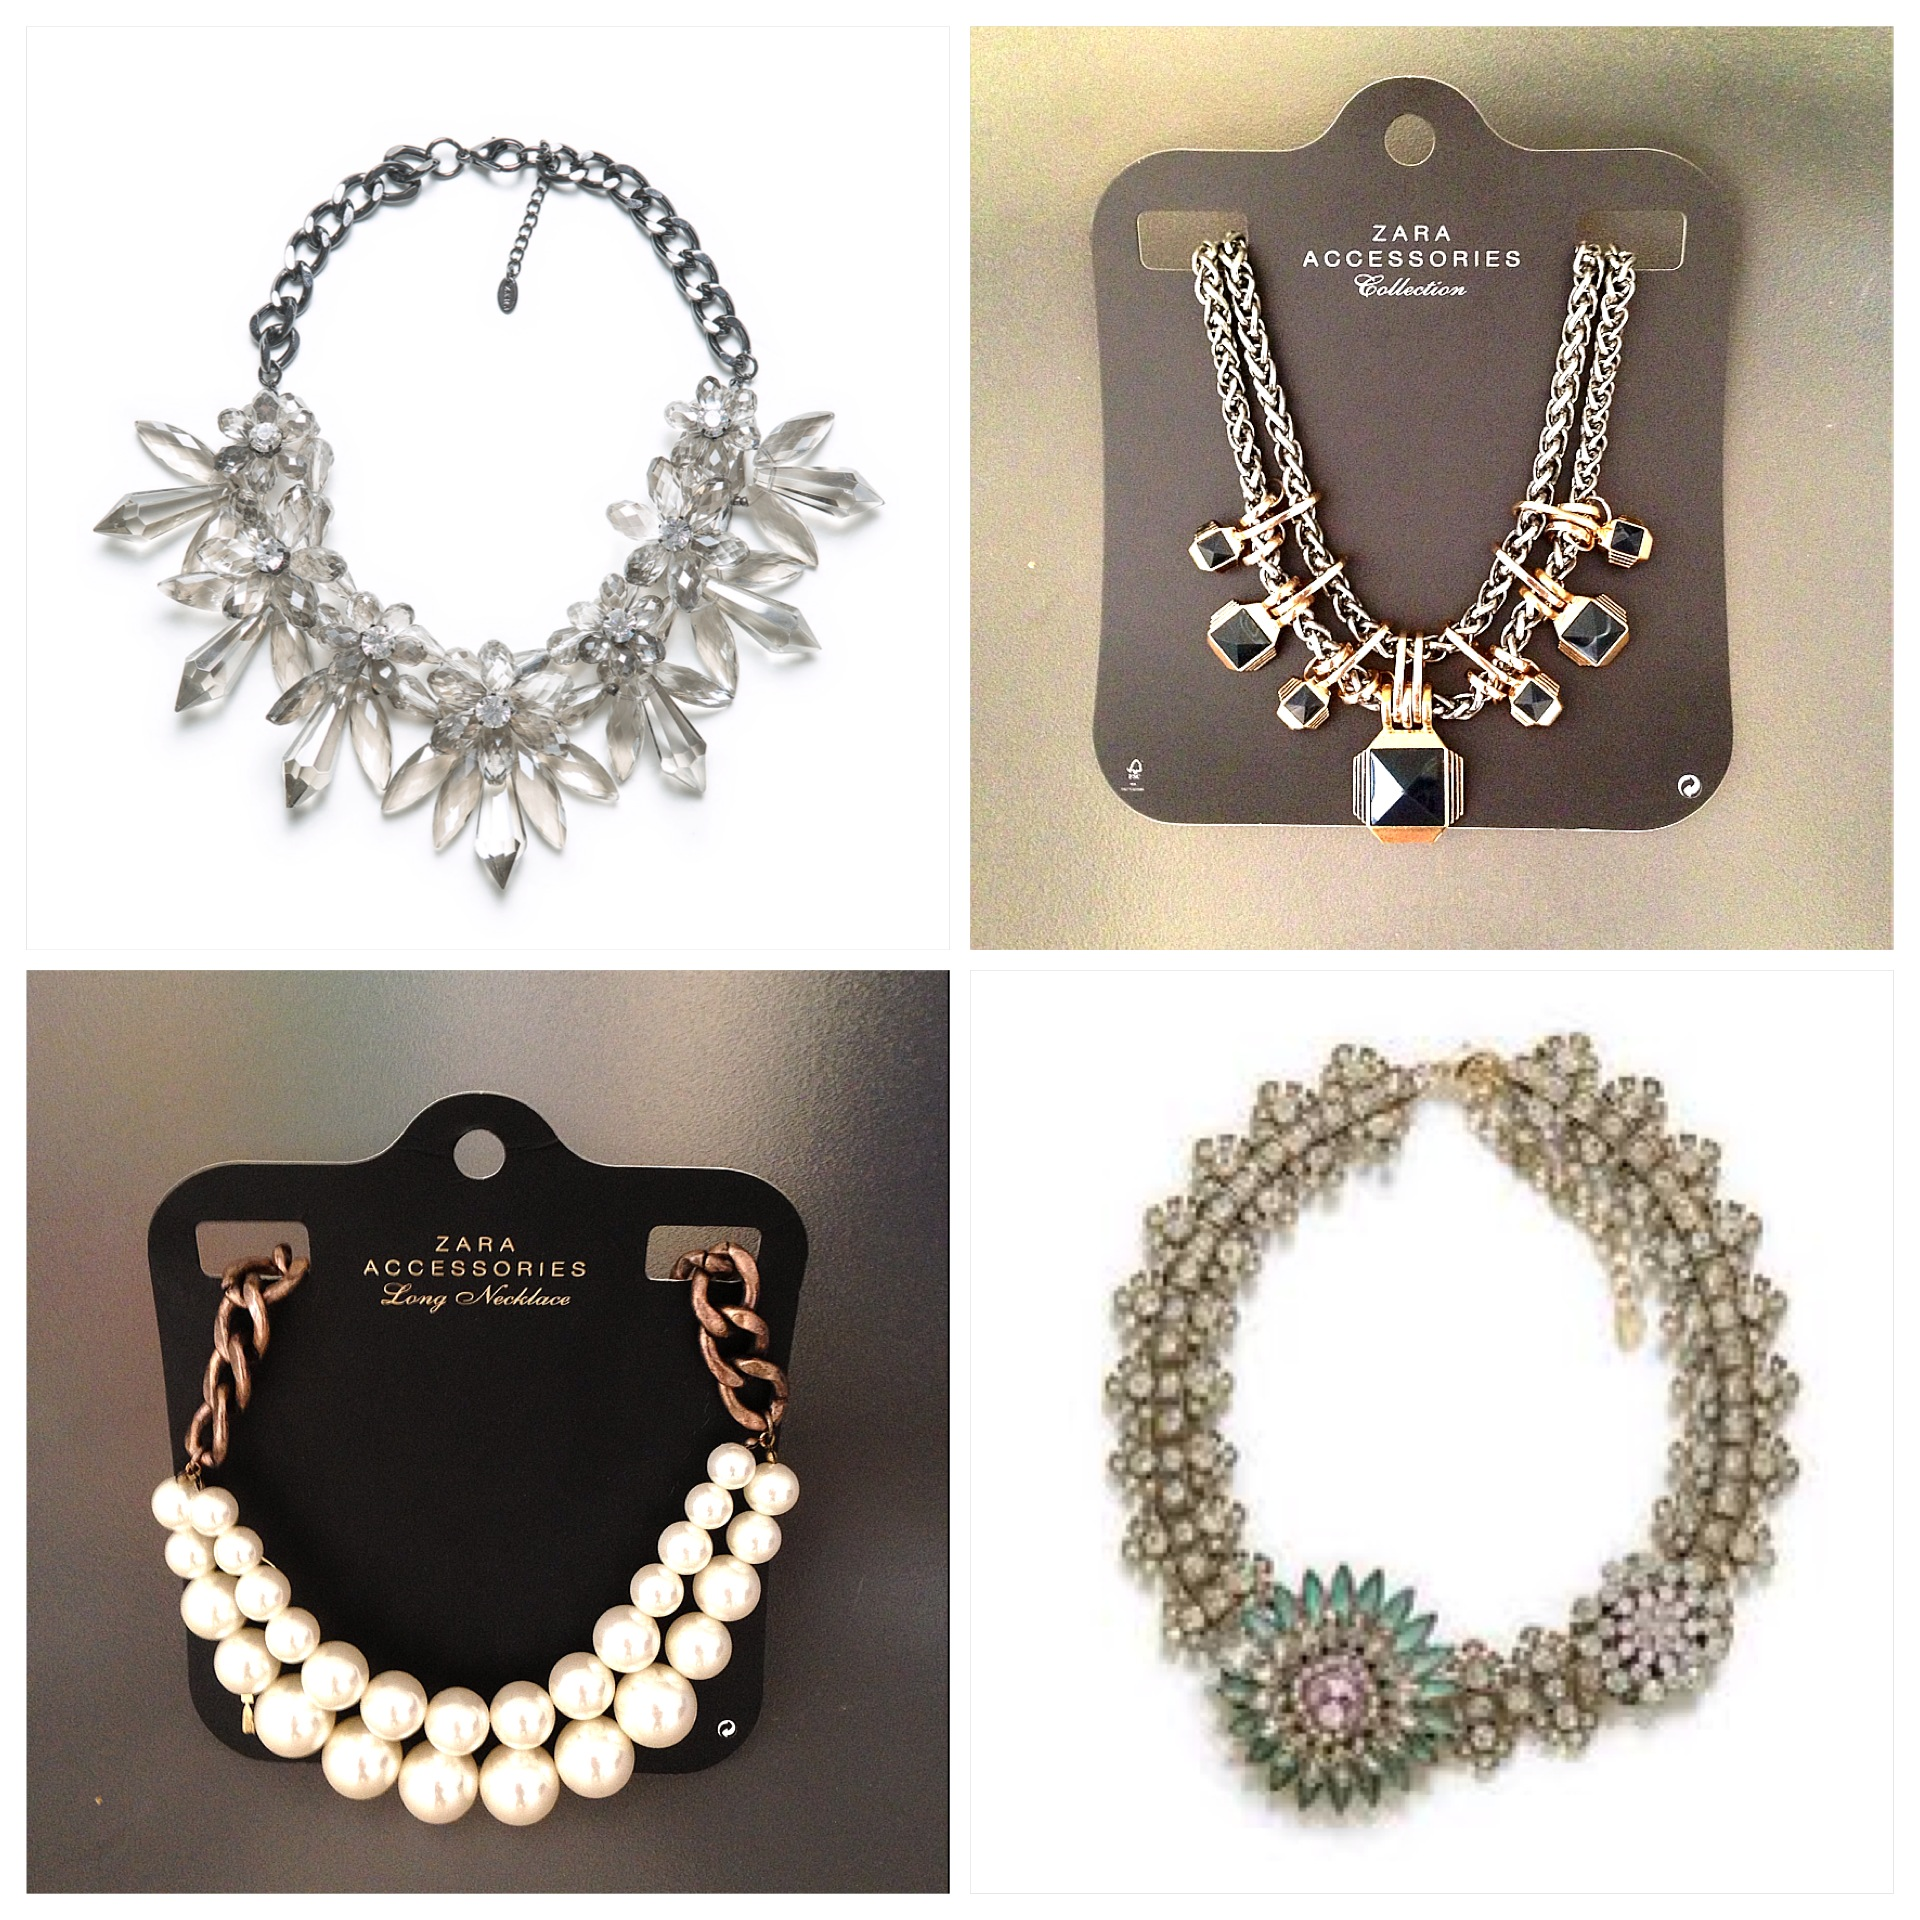 ZARA statement necklaces